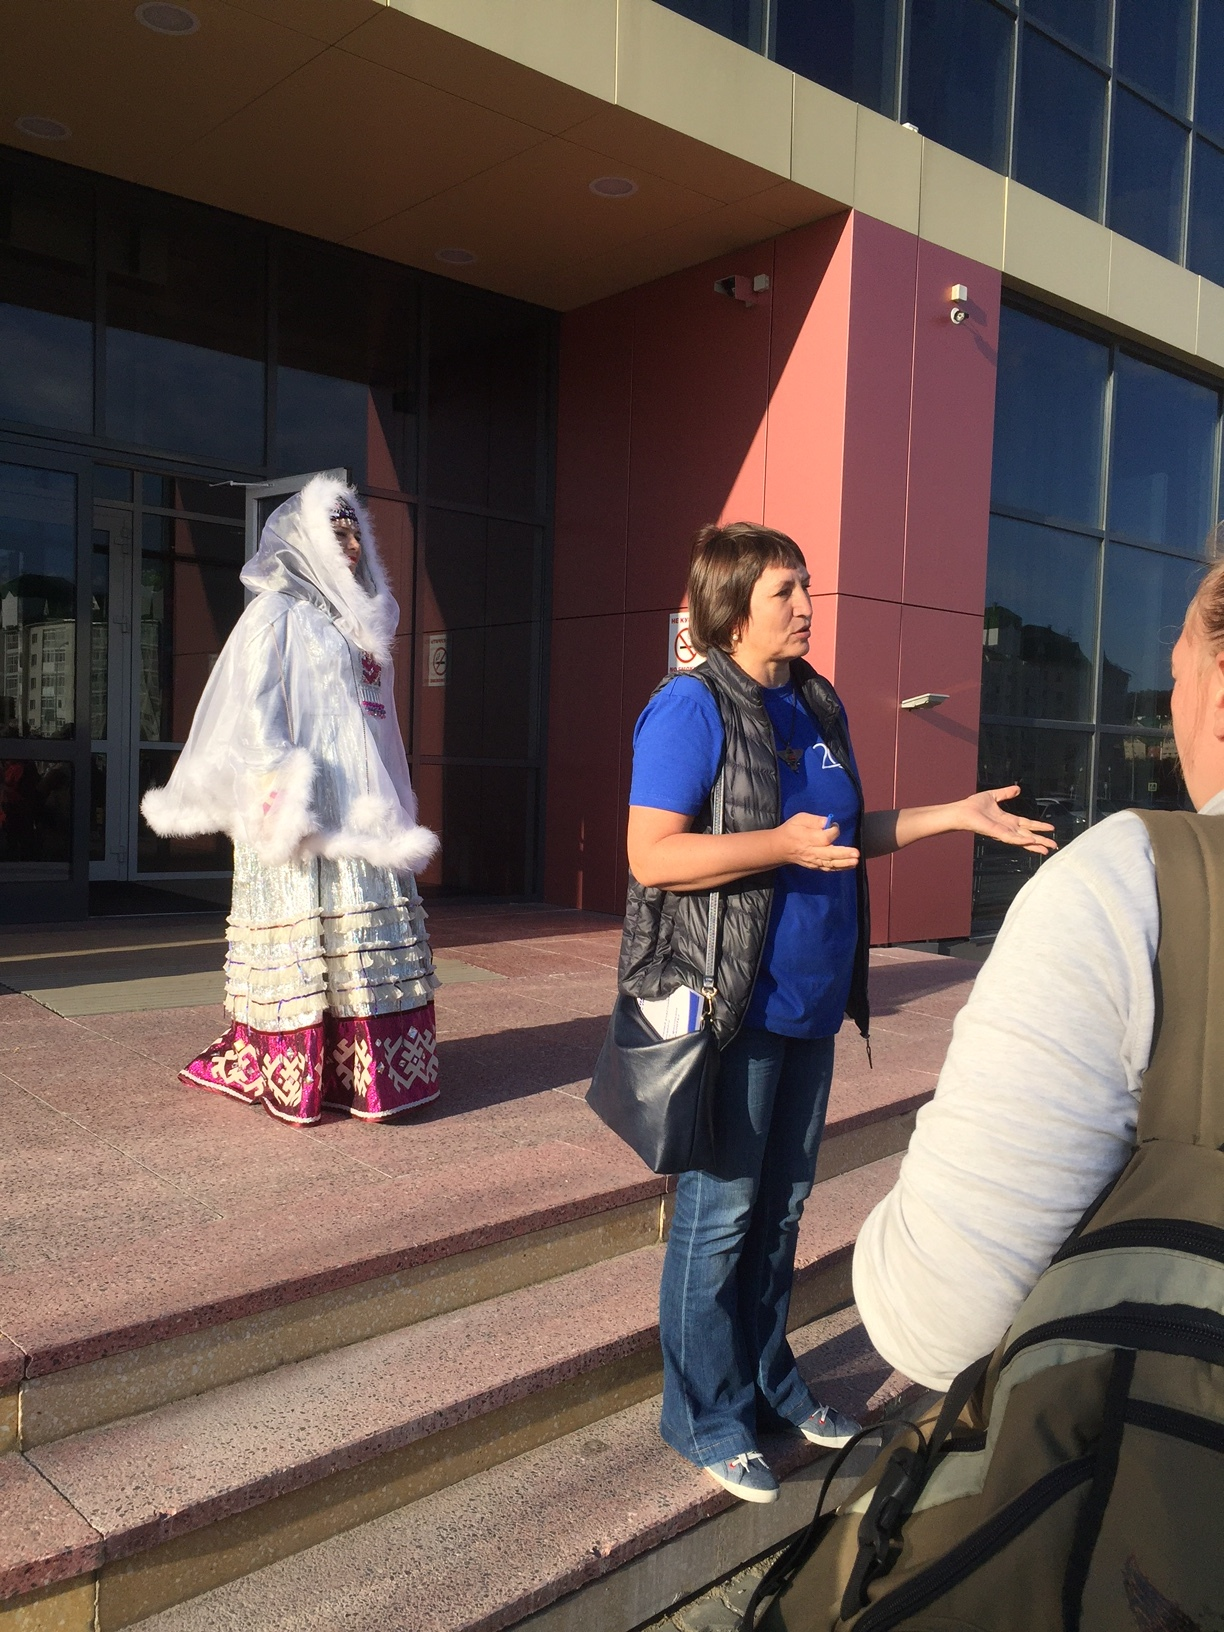 Our hostess, organizer of the festival, Tamara Sutyagina, greeting us as we arrive for a reception hosted by Mayor Maksim Ryashin. A woman in indigenous ceremonial costume stands by.